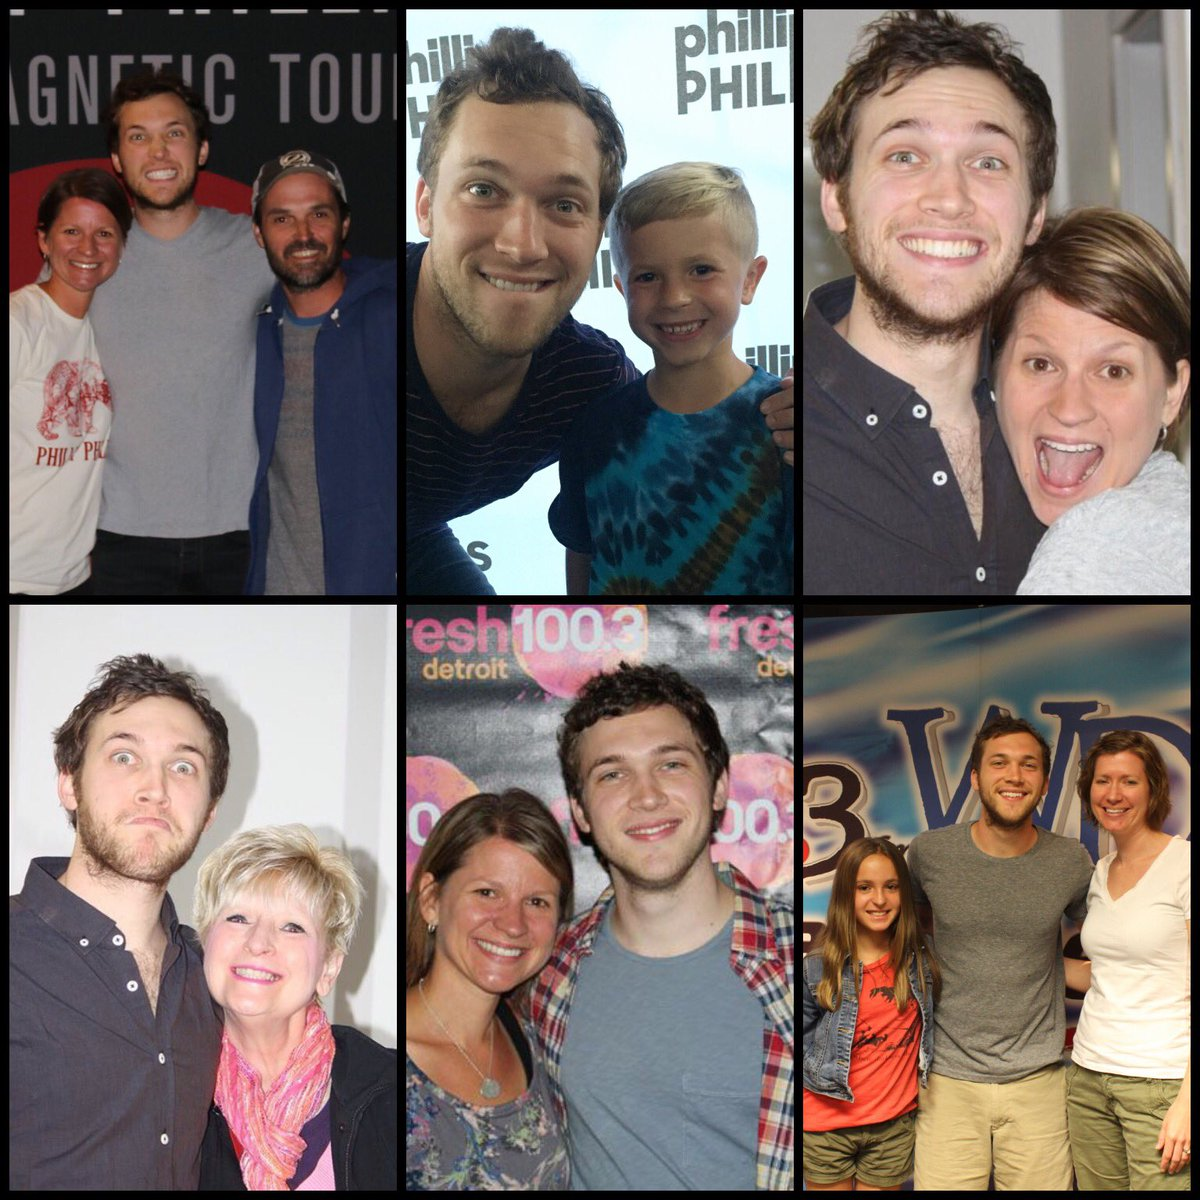 Phillipstweets phillipstweets twitter tbt meet and greets with phillip phillips s a family affair pictured my husband my son my mom my daughter and my sis m4hsunfo Images